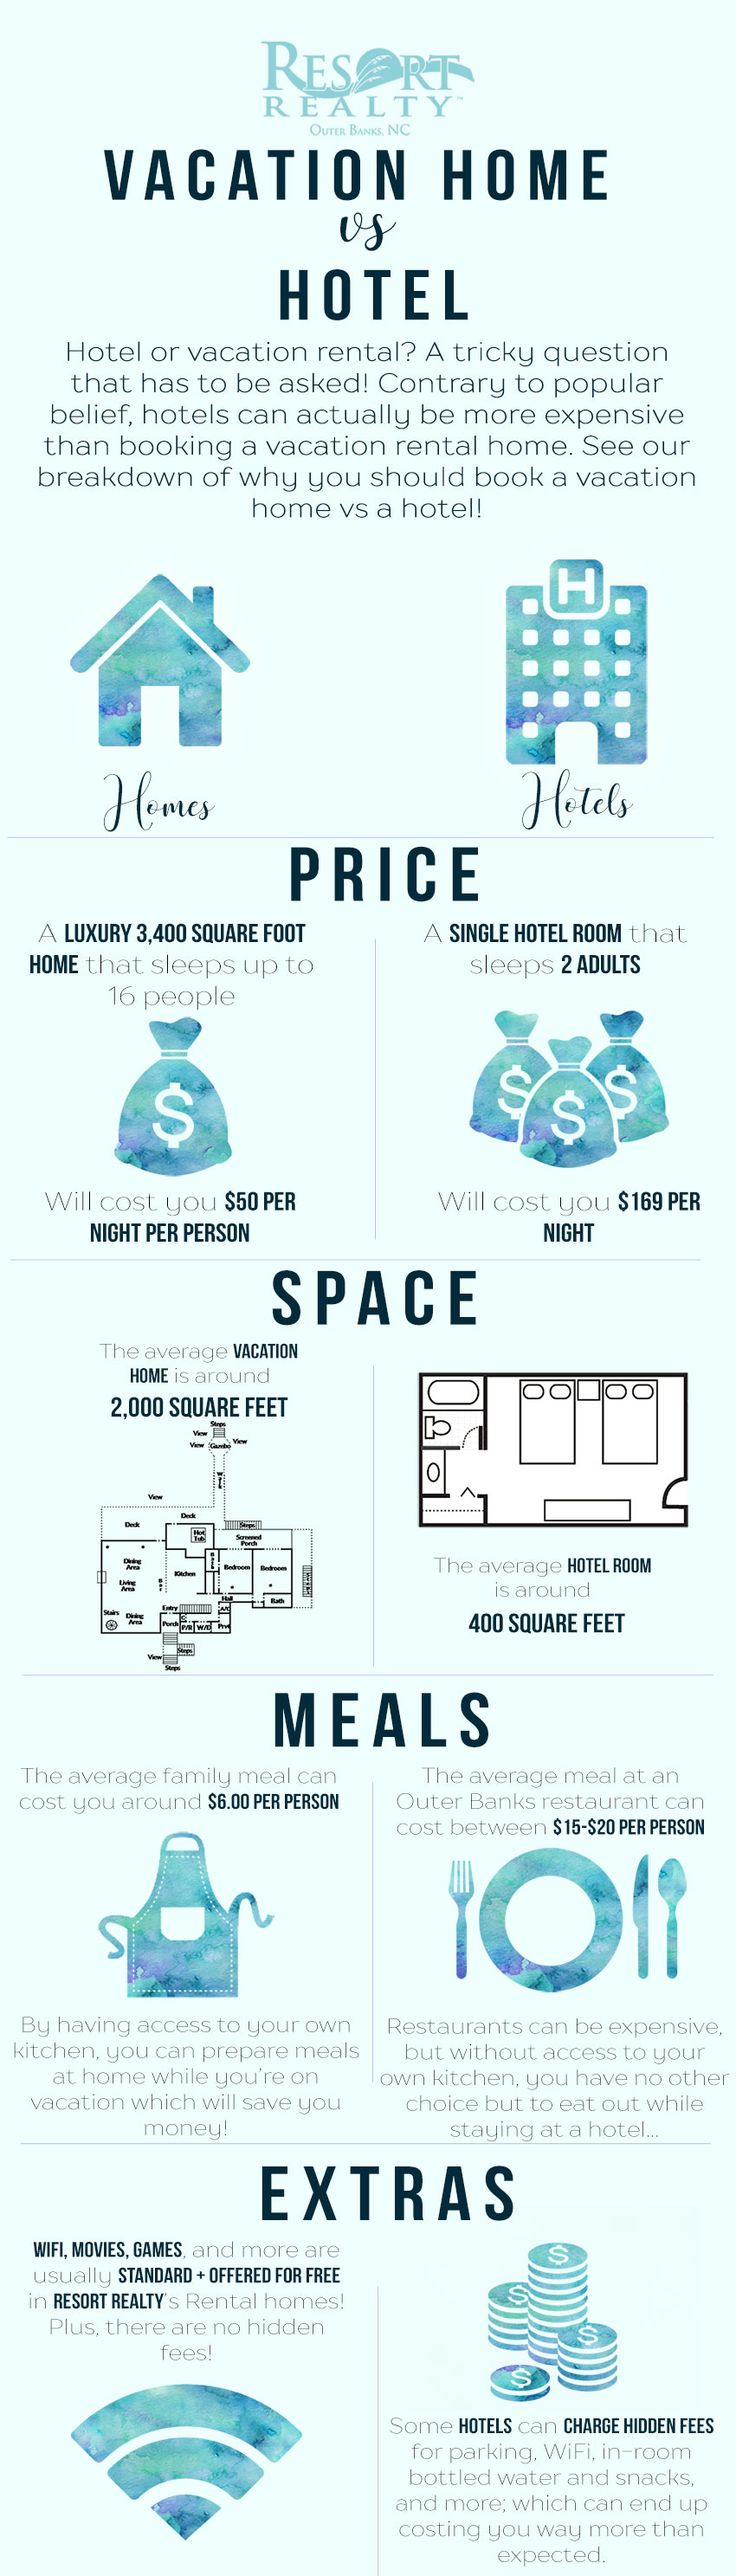 Infographic: Renting Vacation Homes vs Hotels - Resort Realty of the Outer Banks